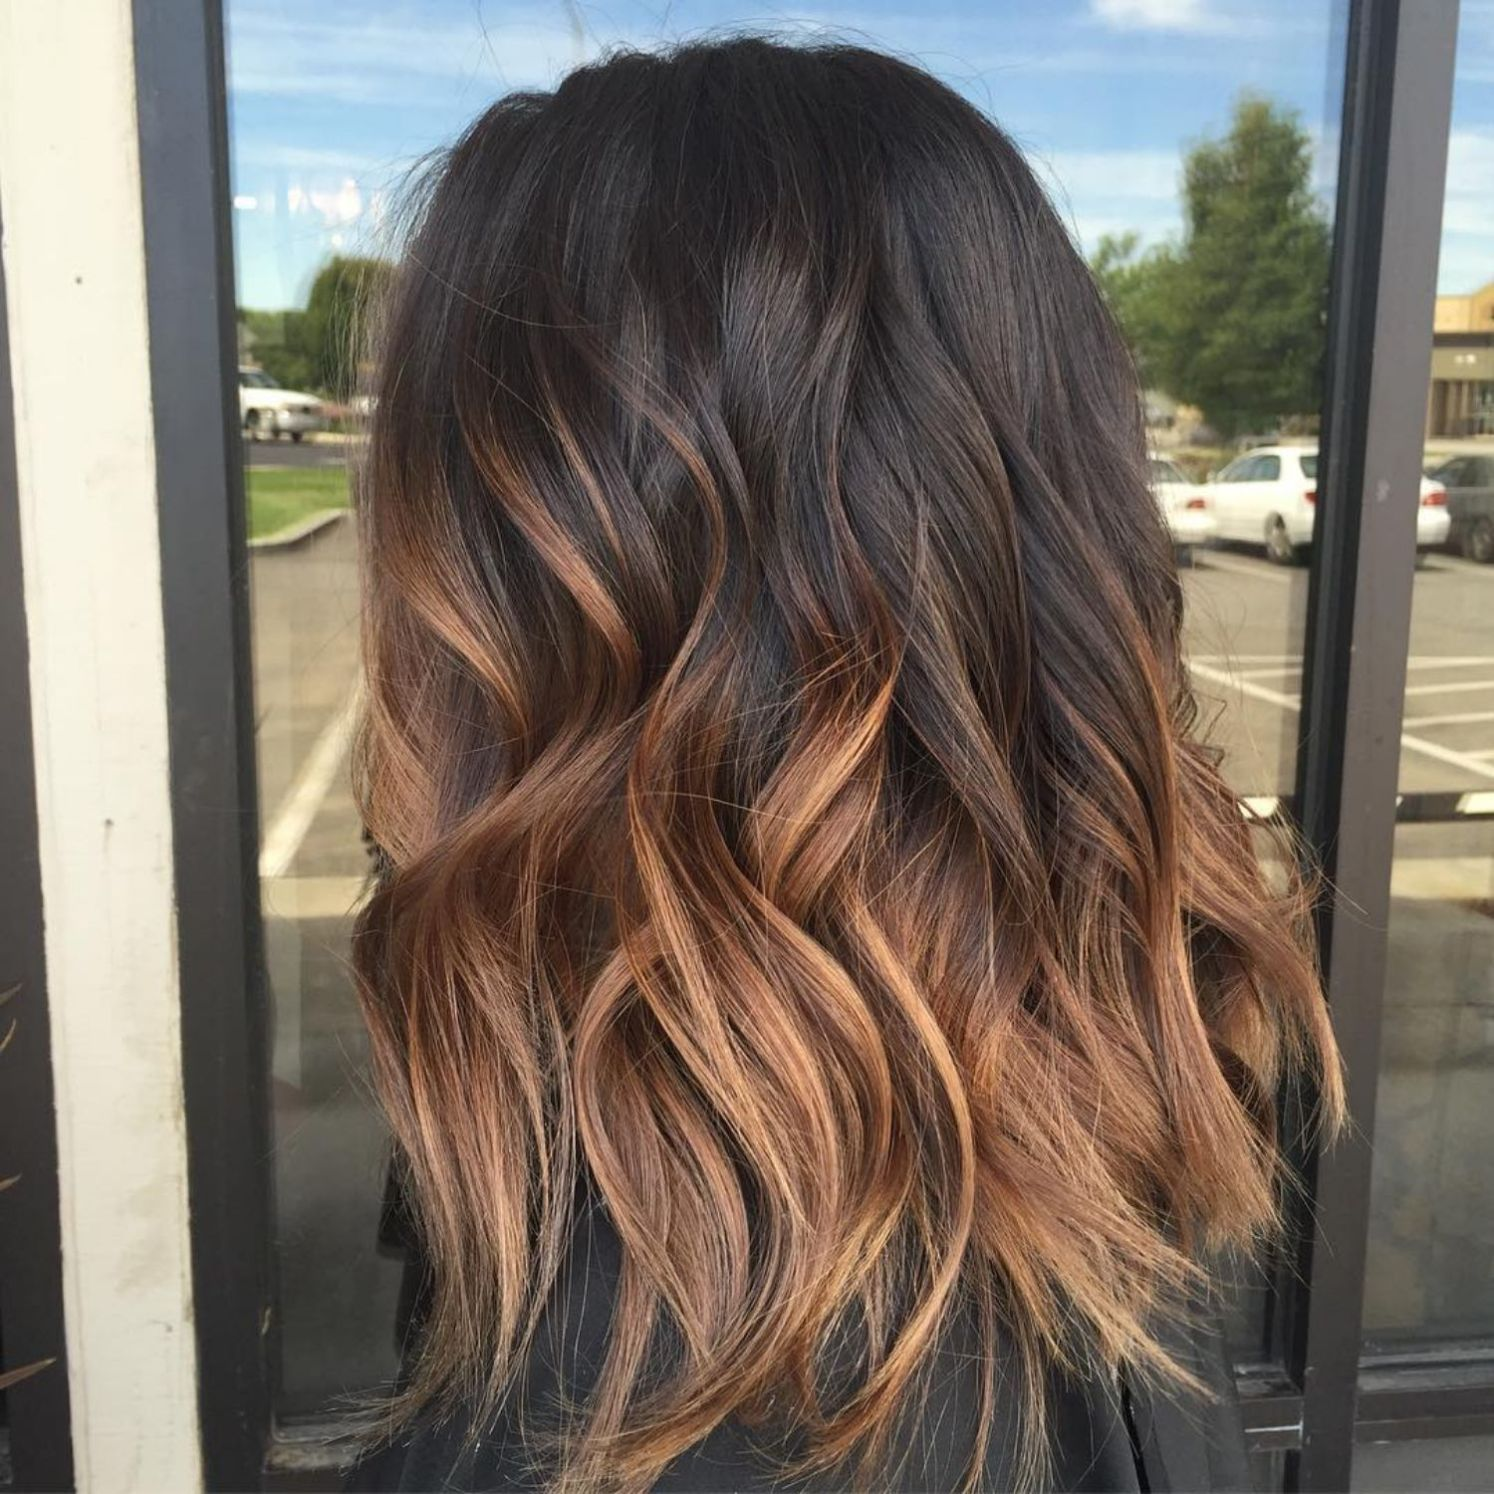 60 Chocolate Brown Hair Color Ideas For Brunettes Brunette Hair Color Ombre Hair Color Chocolate Brown Hair Color